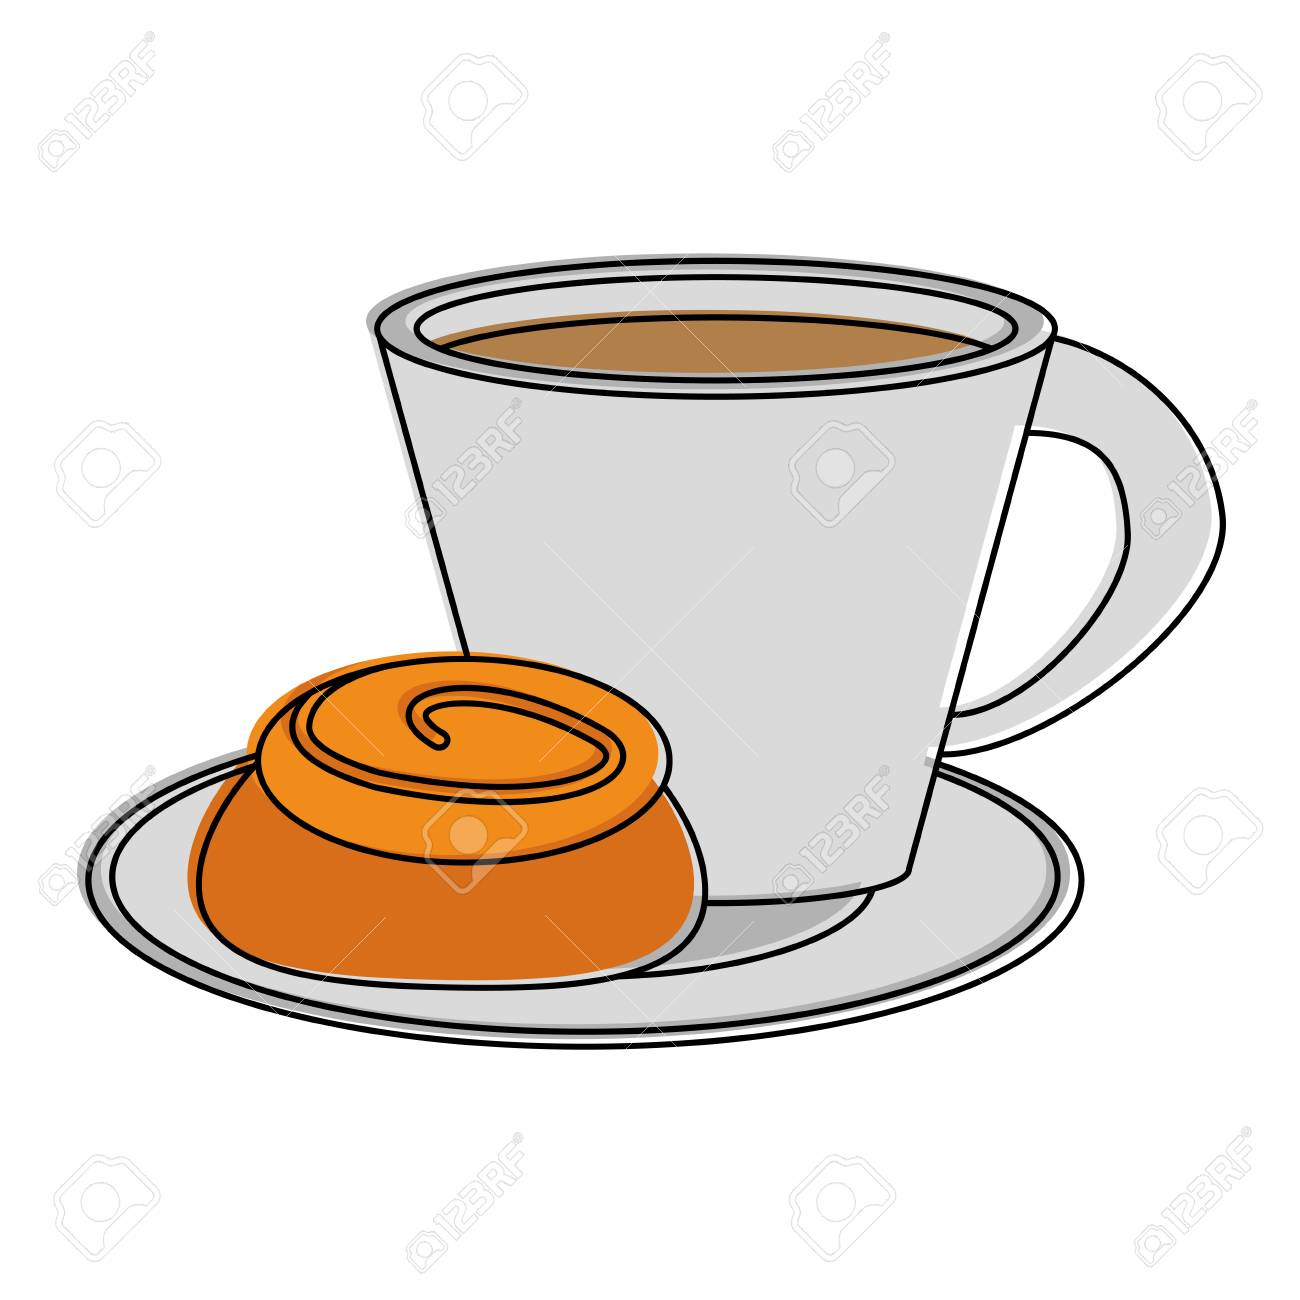 coffee with pastry icon image vector illustration design.